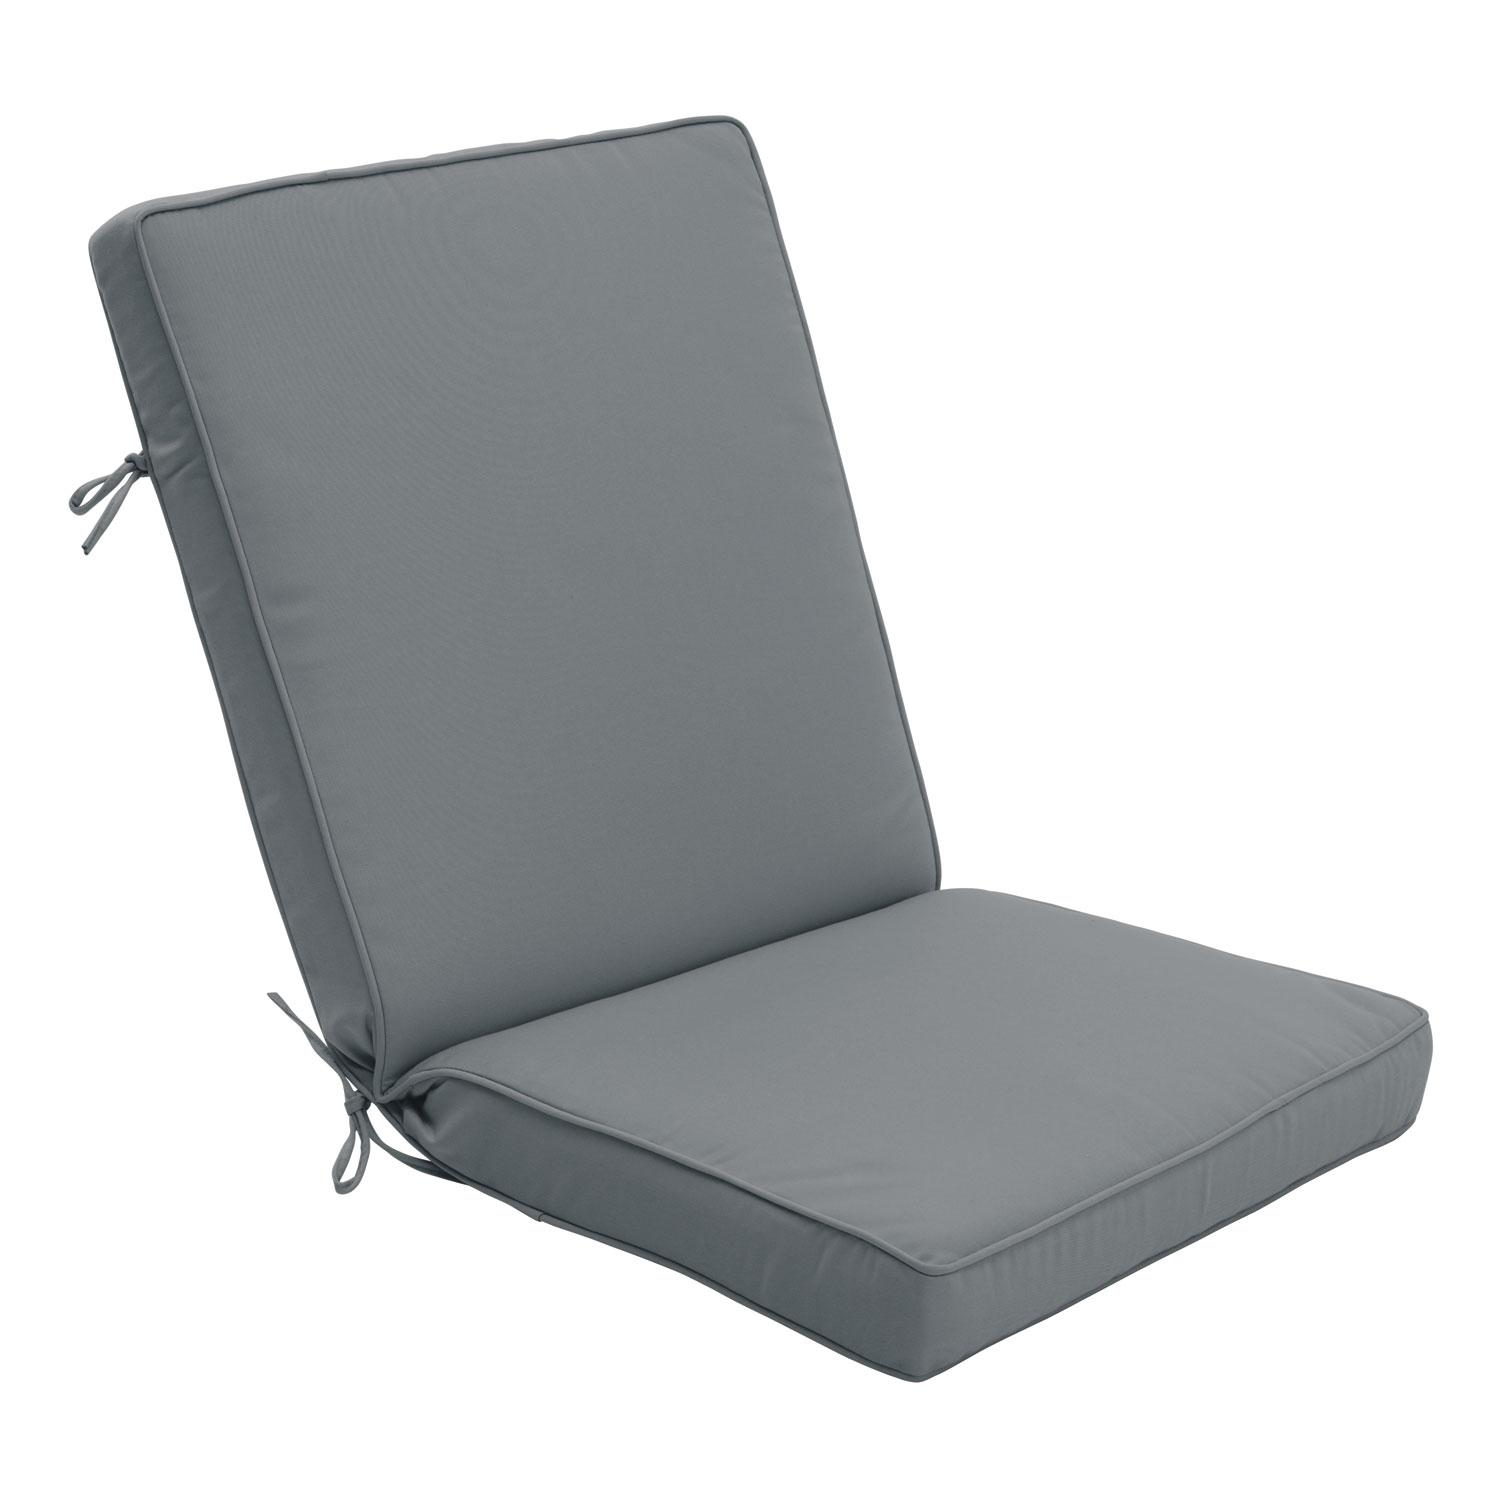 Sunbrella%AE Outdoor Lounge Chair Seat & Back Cushion (44x22x3